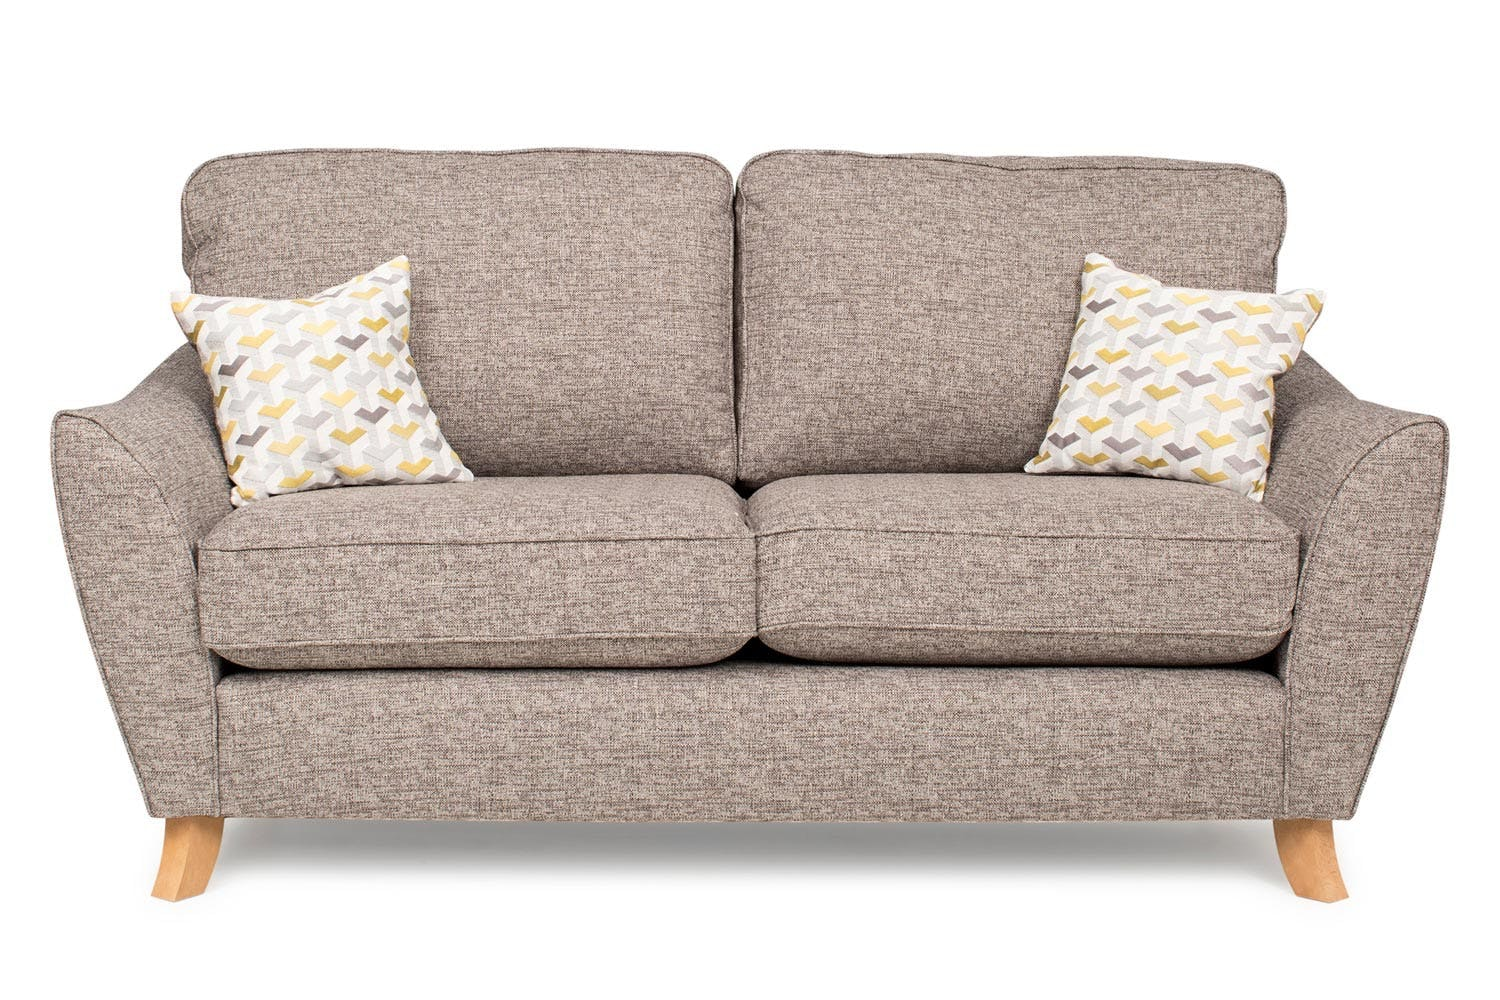 Joanna 3 Seater Sofa